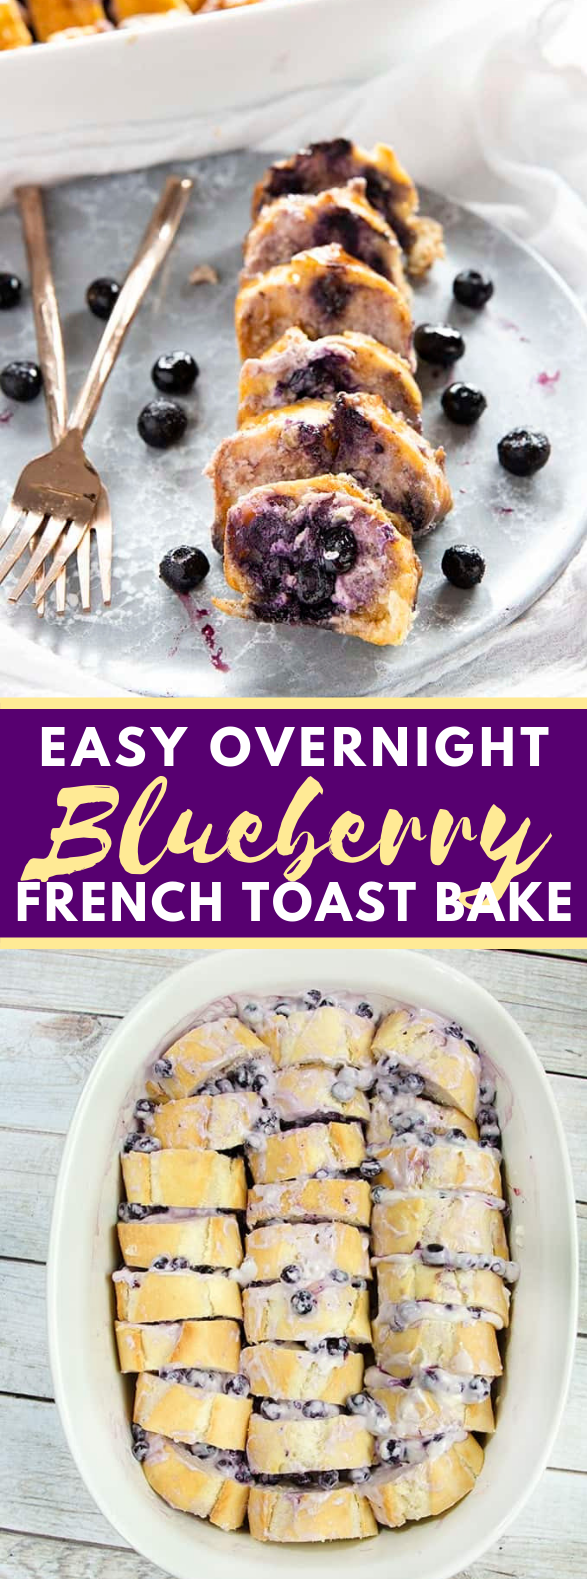 OVERNIGHT BLUEBERRY FRENCH TOAST CASSEROLE #healthydessert #breakfast